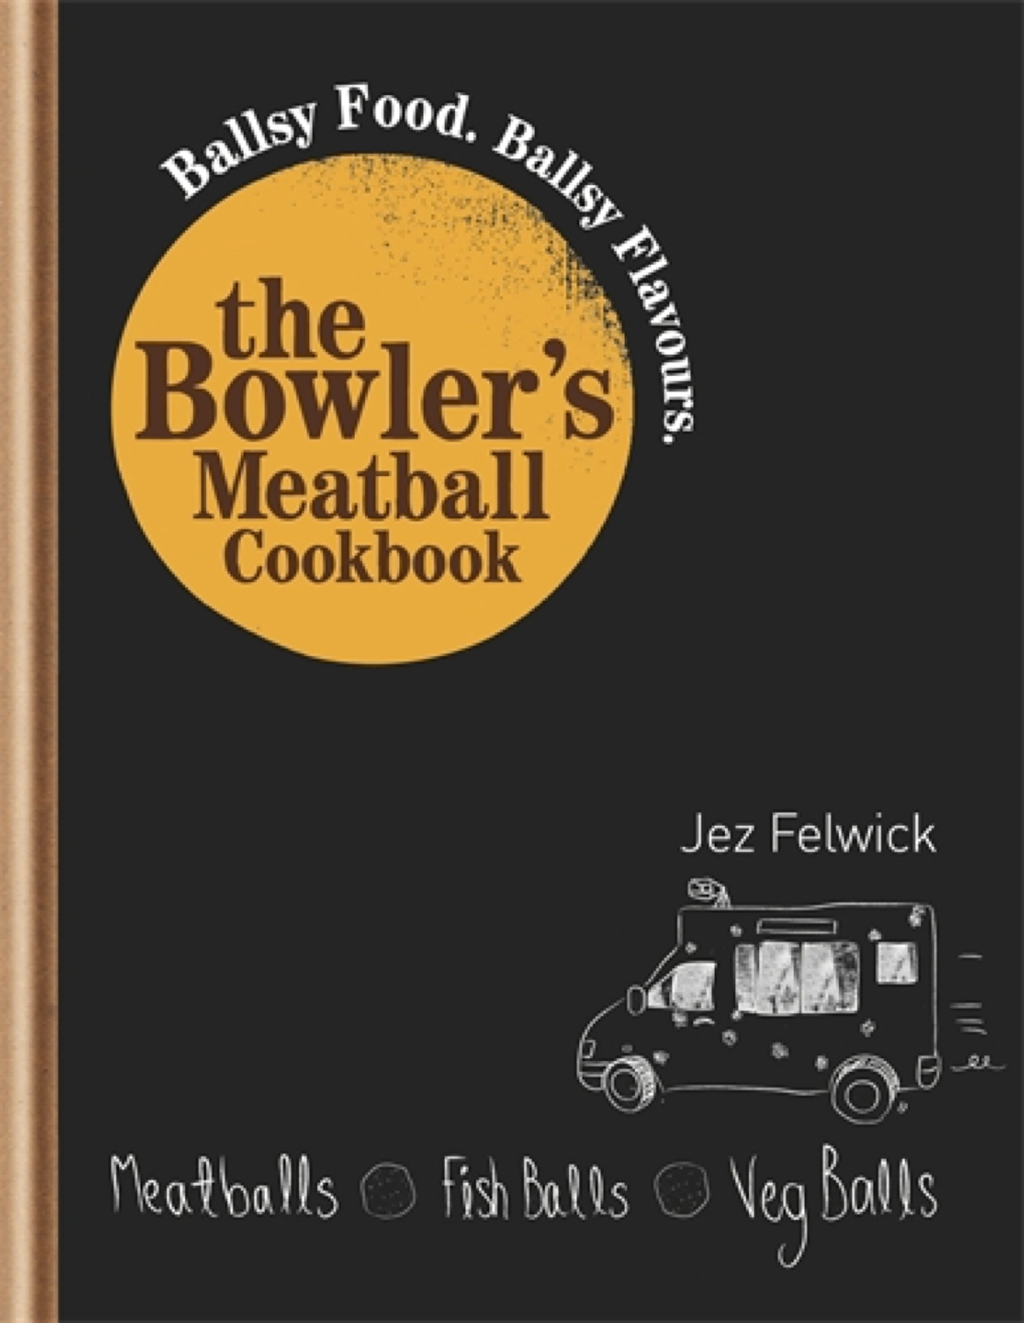 The Bowler's Meatball Cookbook Ballsy food. Ballsy flavours.